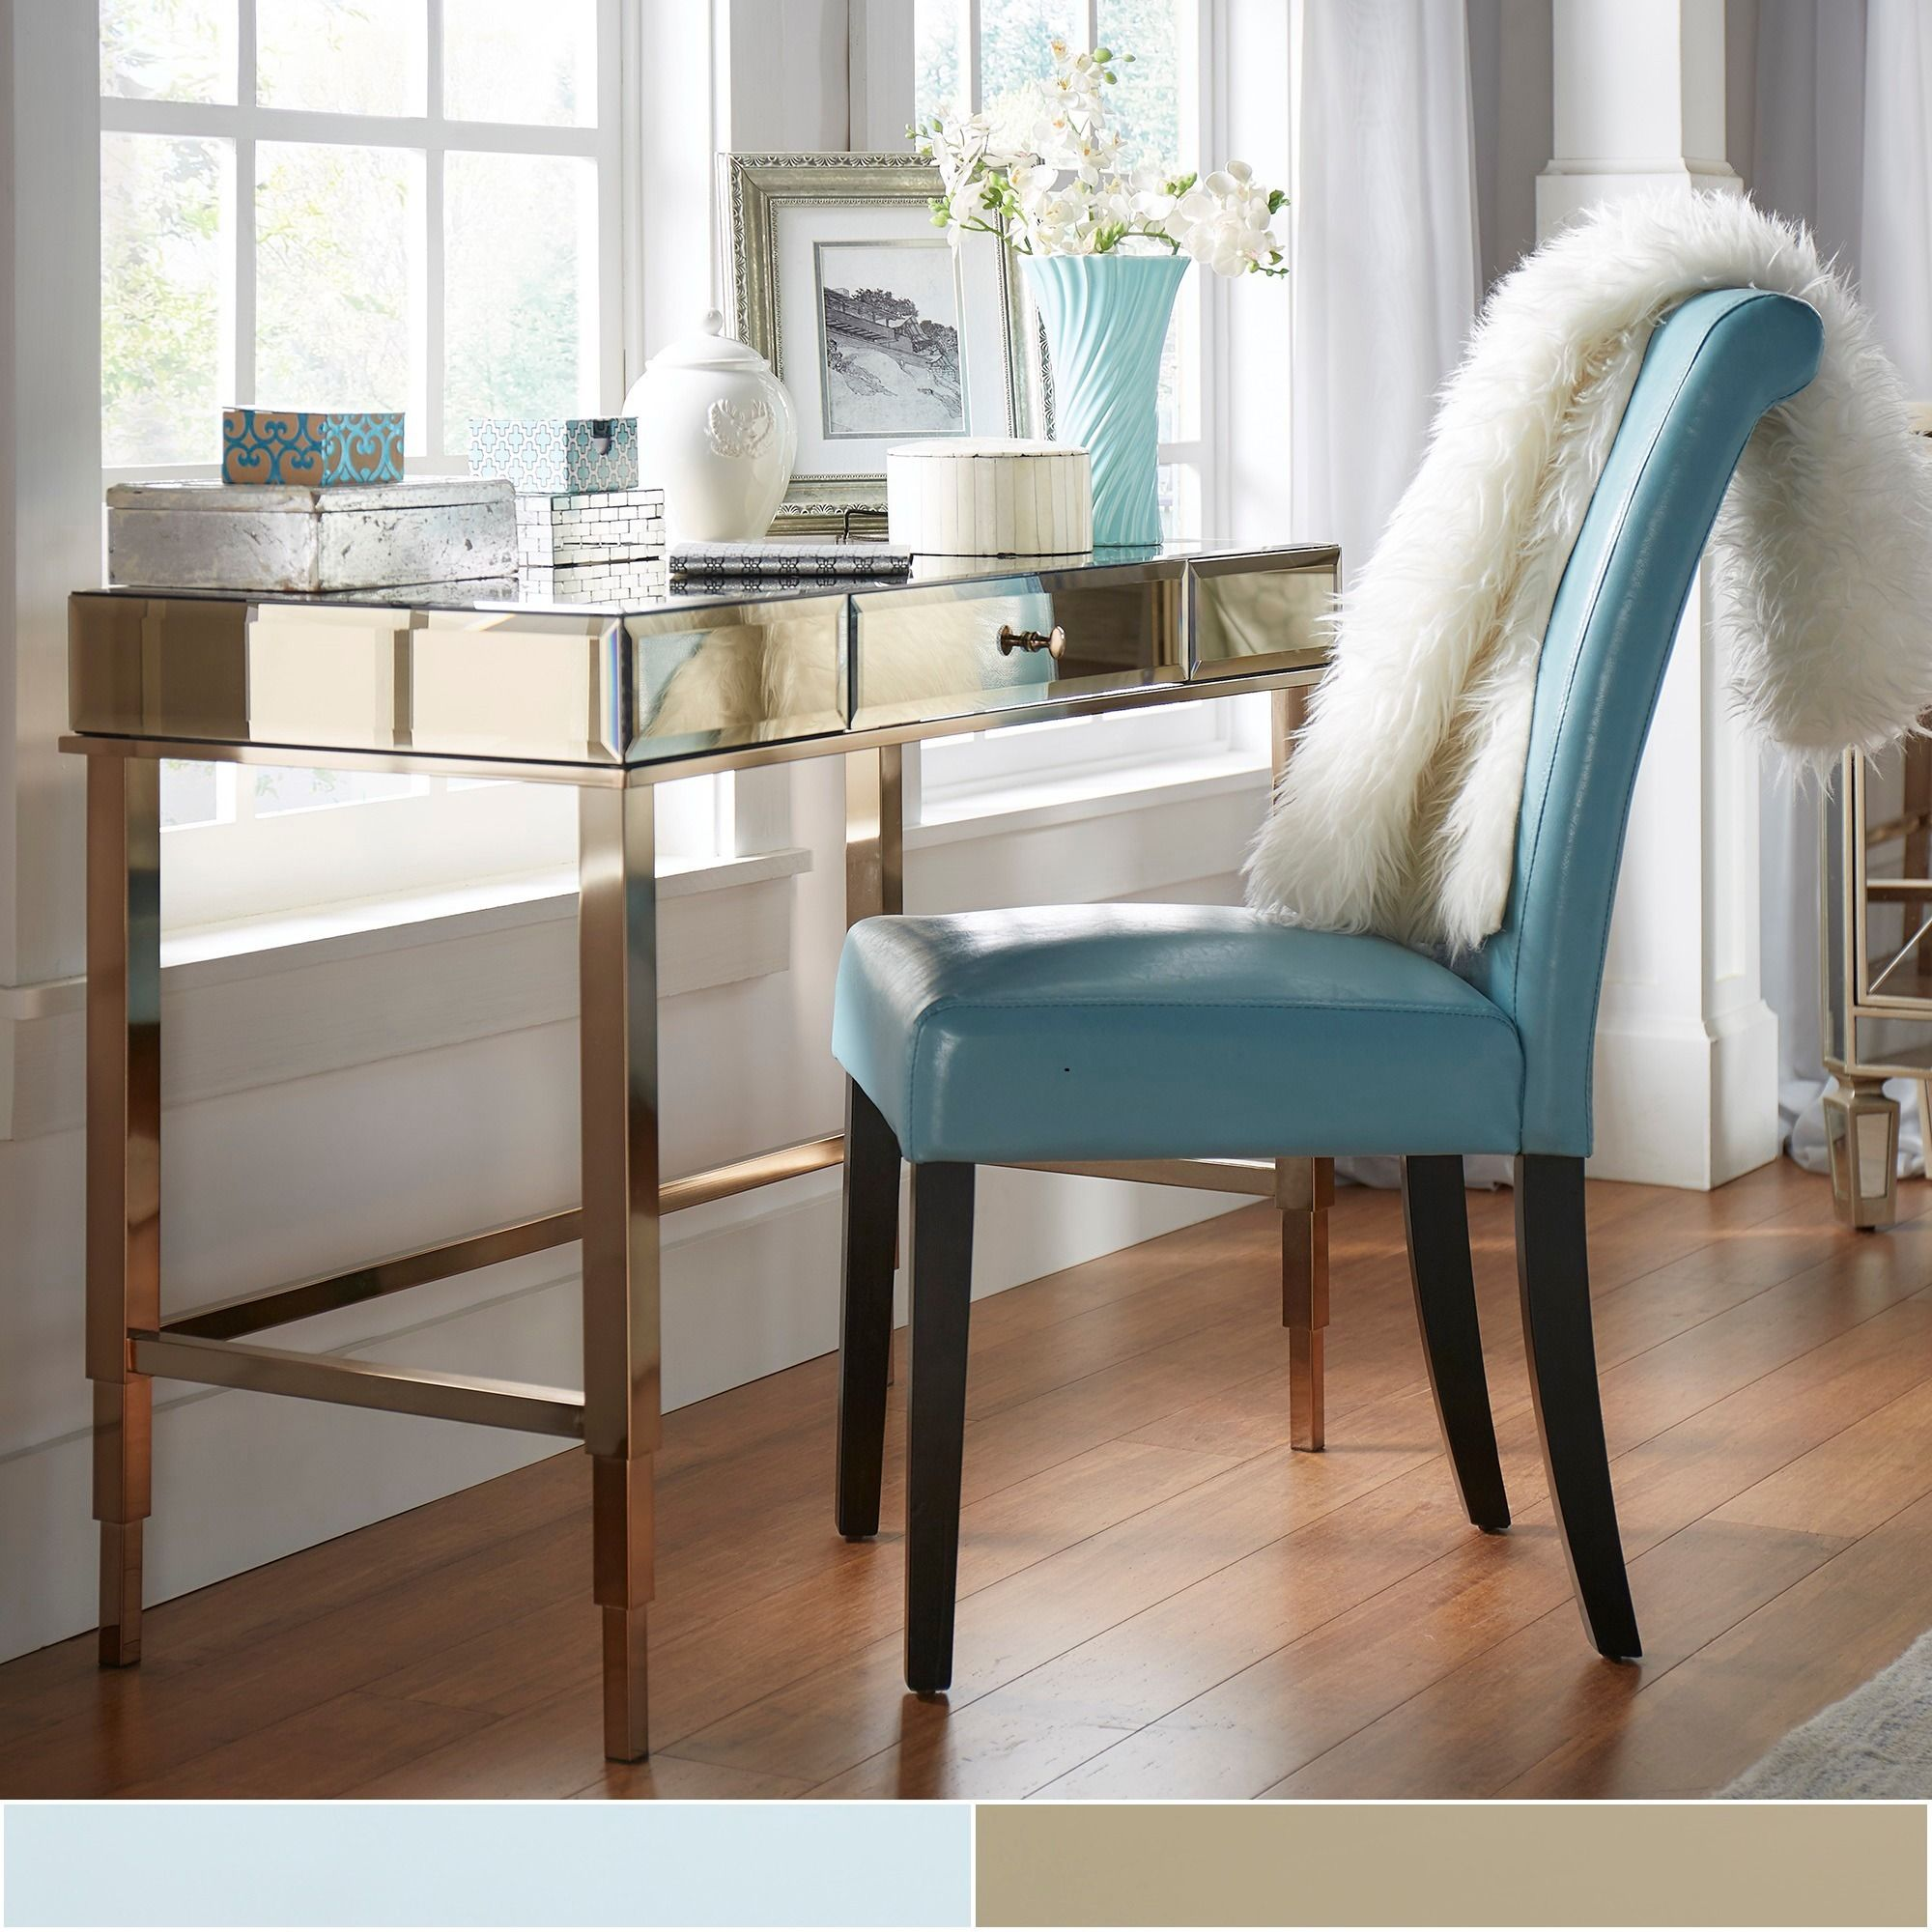 Add Some Glamour And Functionality To Any Space With This